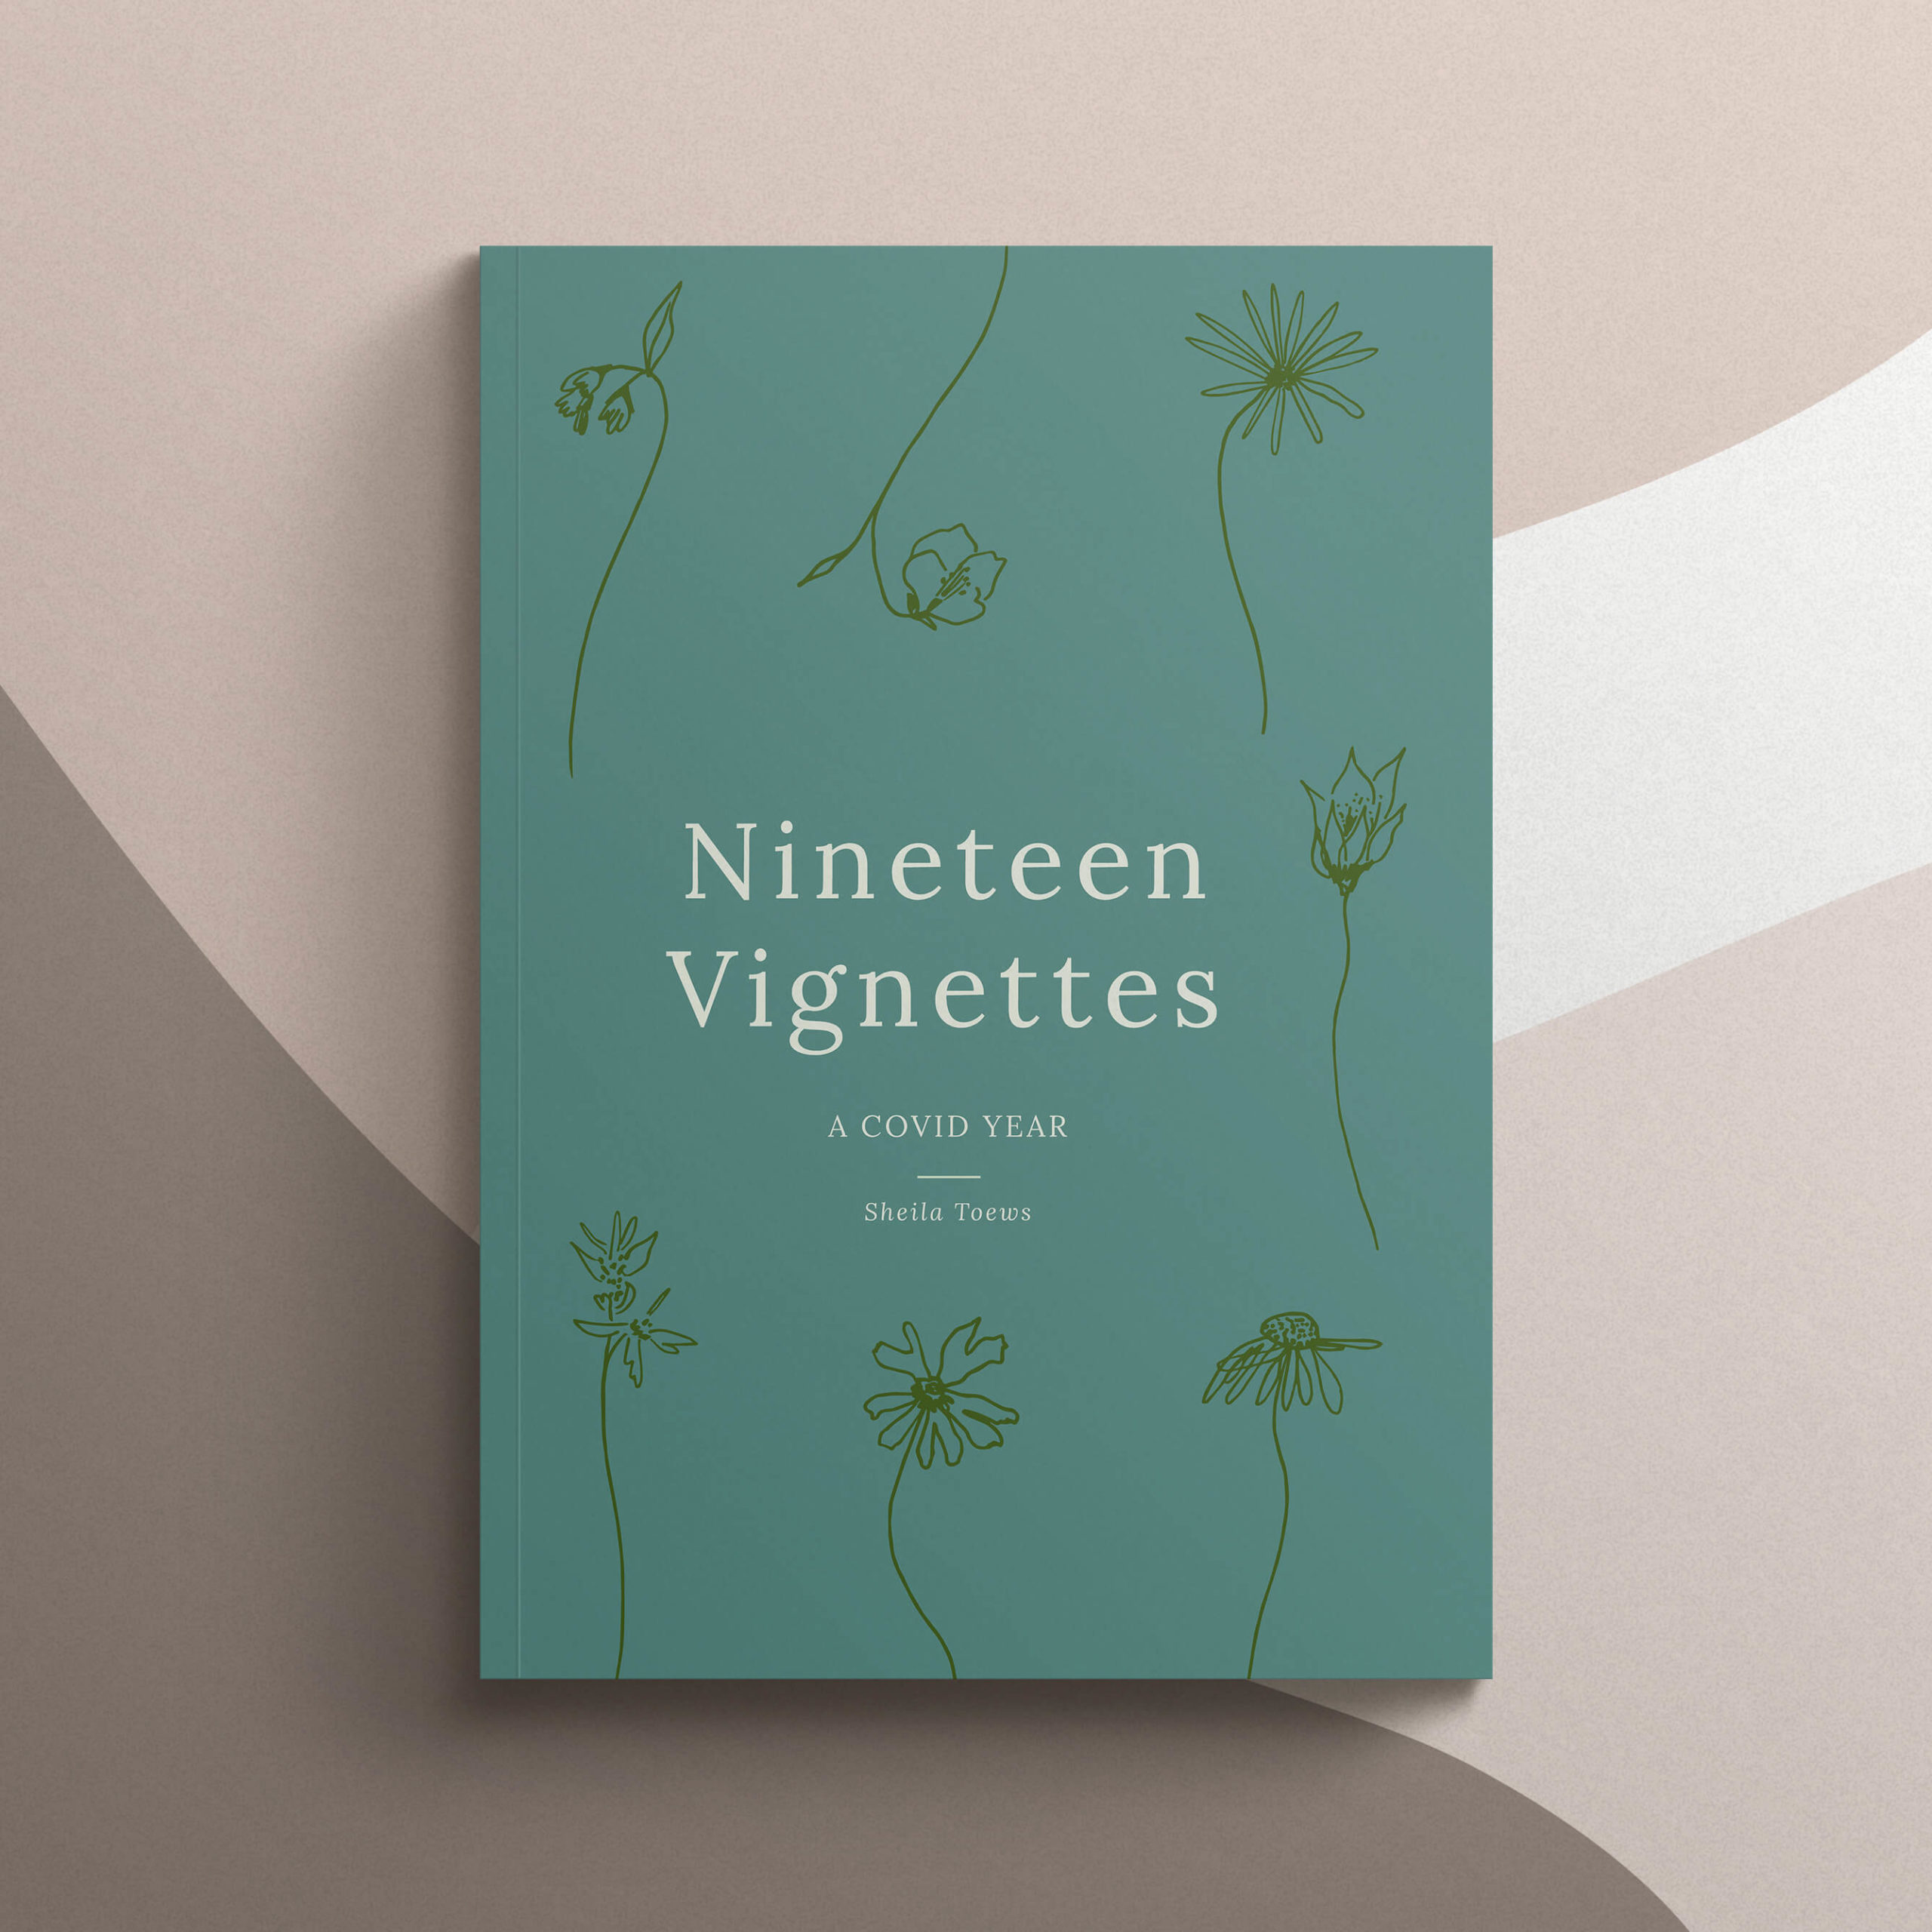 Book design cover options for a short story collection featuring Manitoba wildflowers